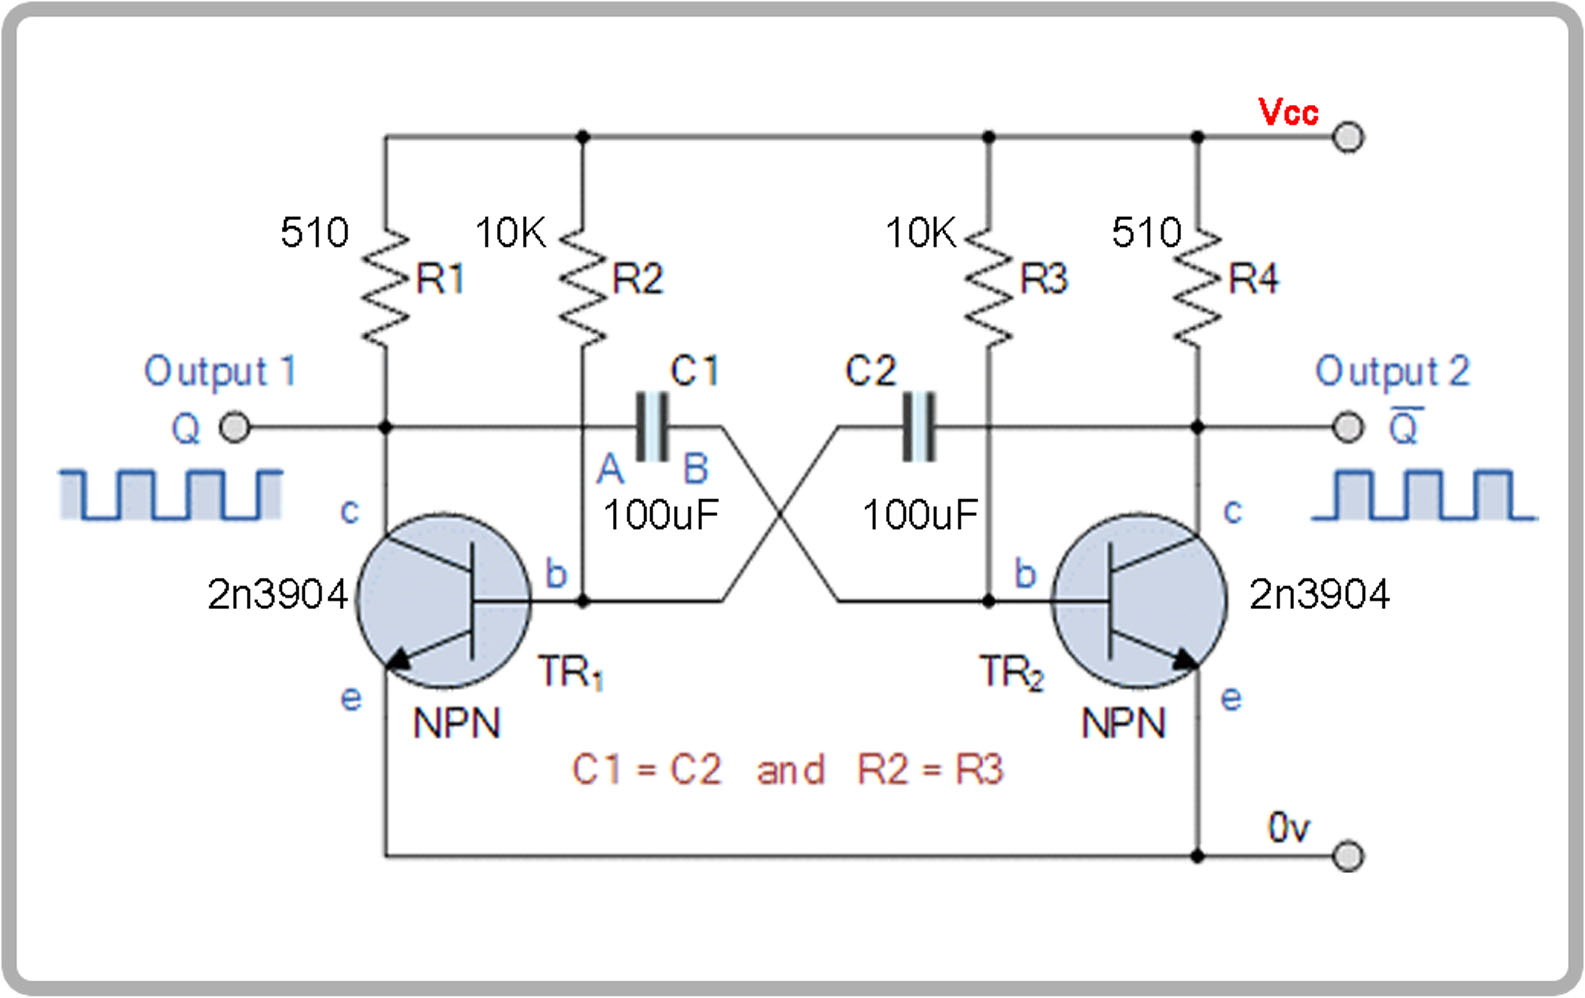 multivibrator RC oscillator scheamtic with values